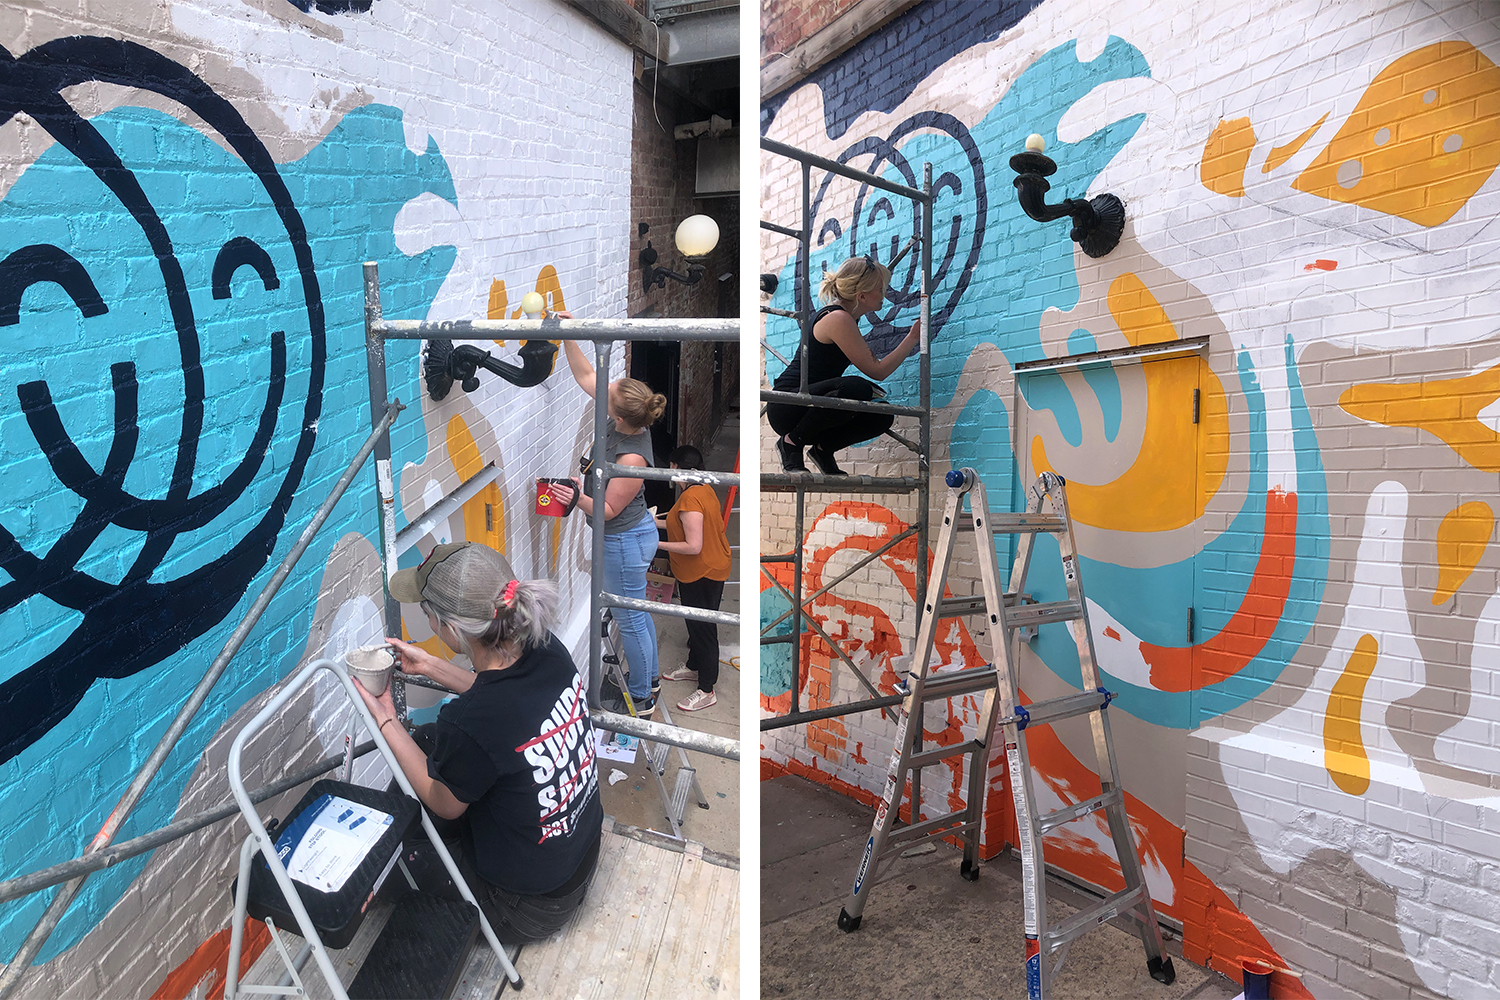 Two images of people standing on scaffolding painting a mural on a brick wall